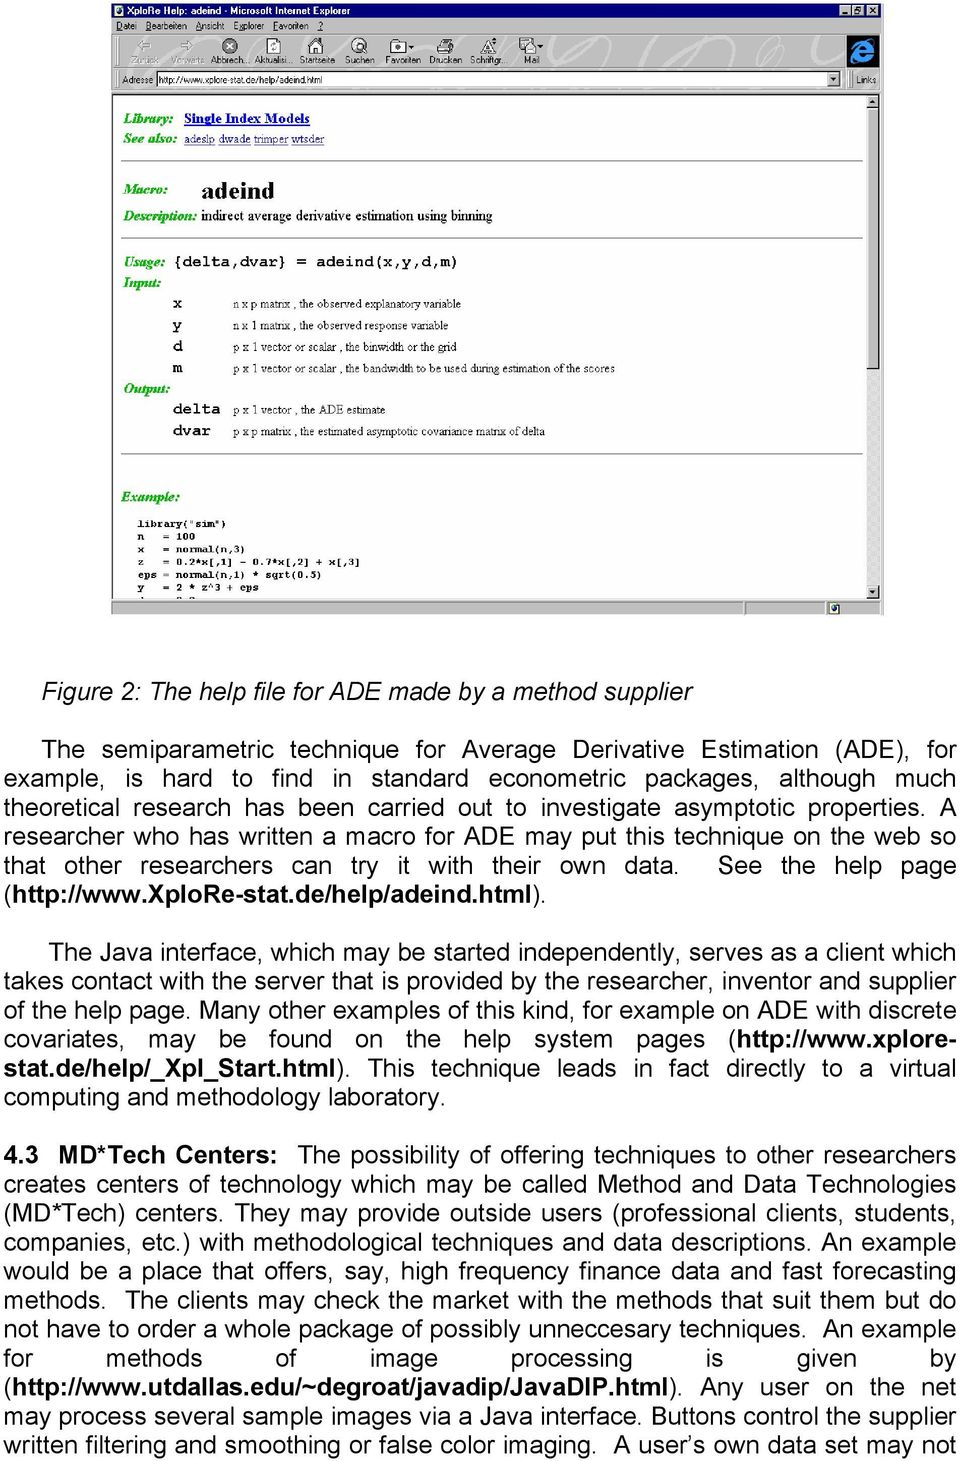 A researcher who has written a macro for ADE may put this technique on the web so that other researchers can try it with their own data. See the help page (http://www.xplore-stat.de/help/adeind.html).